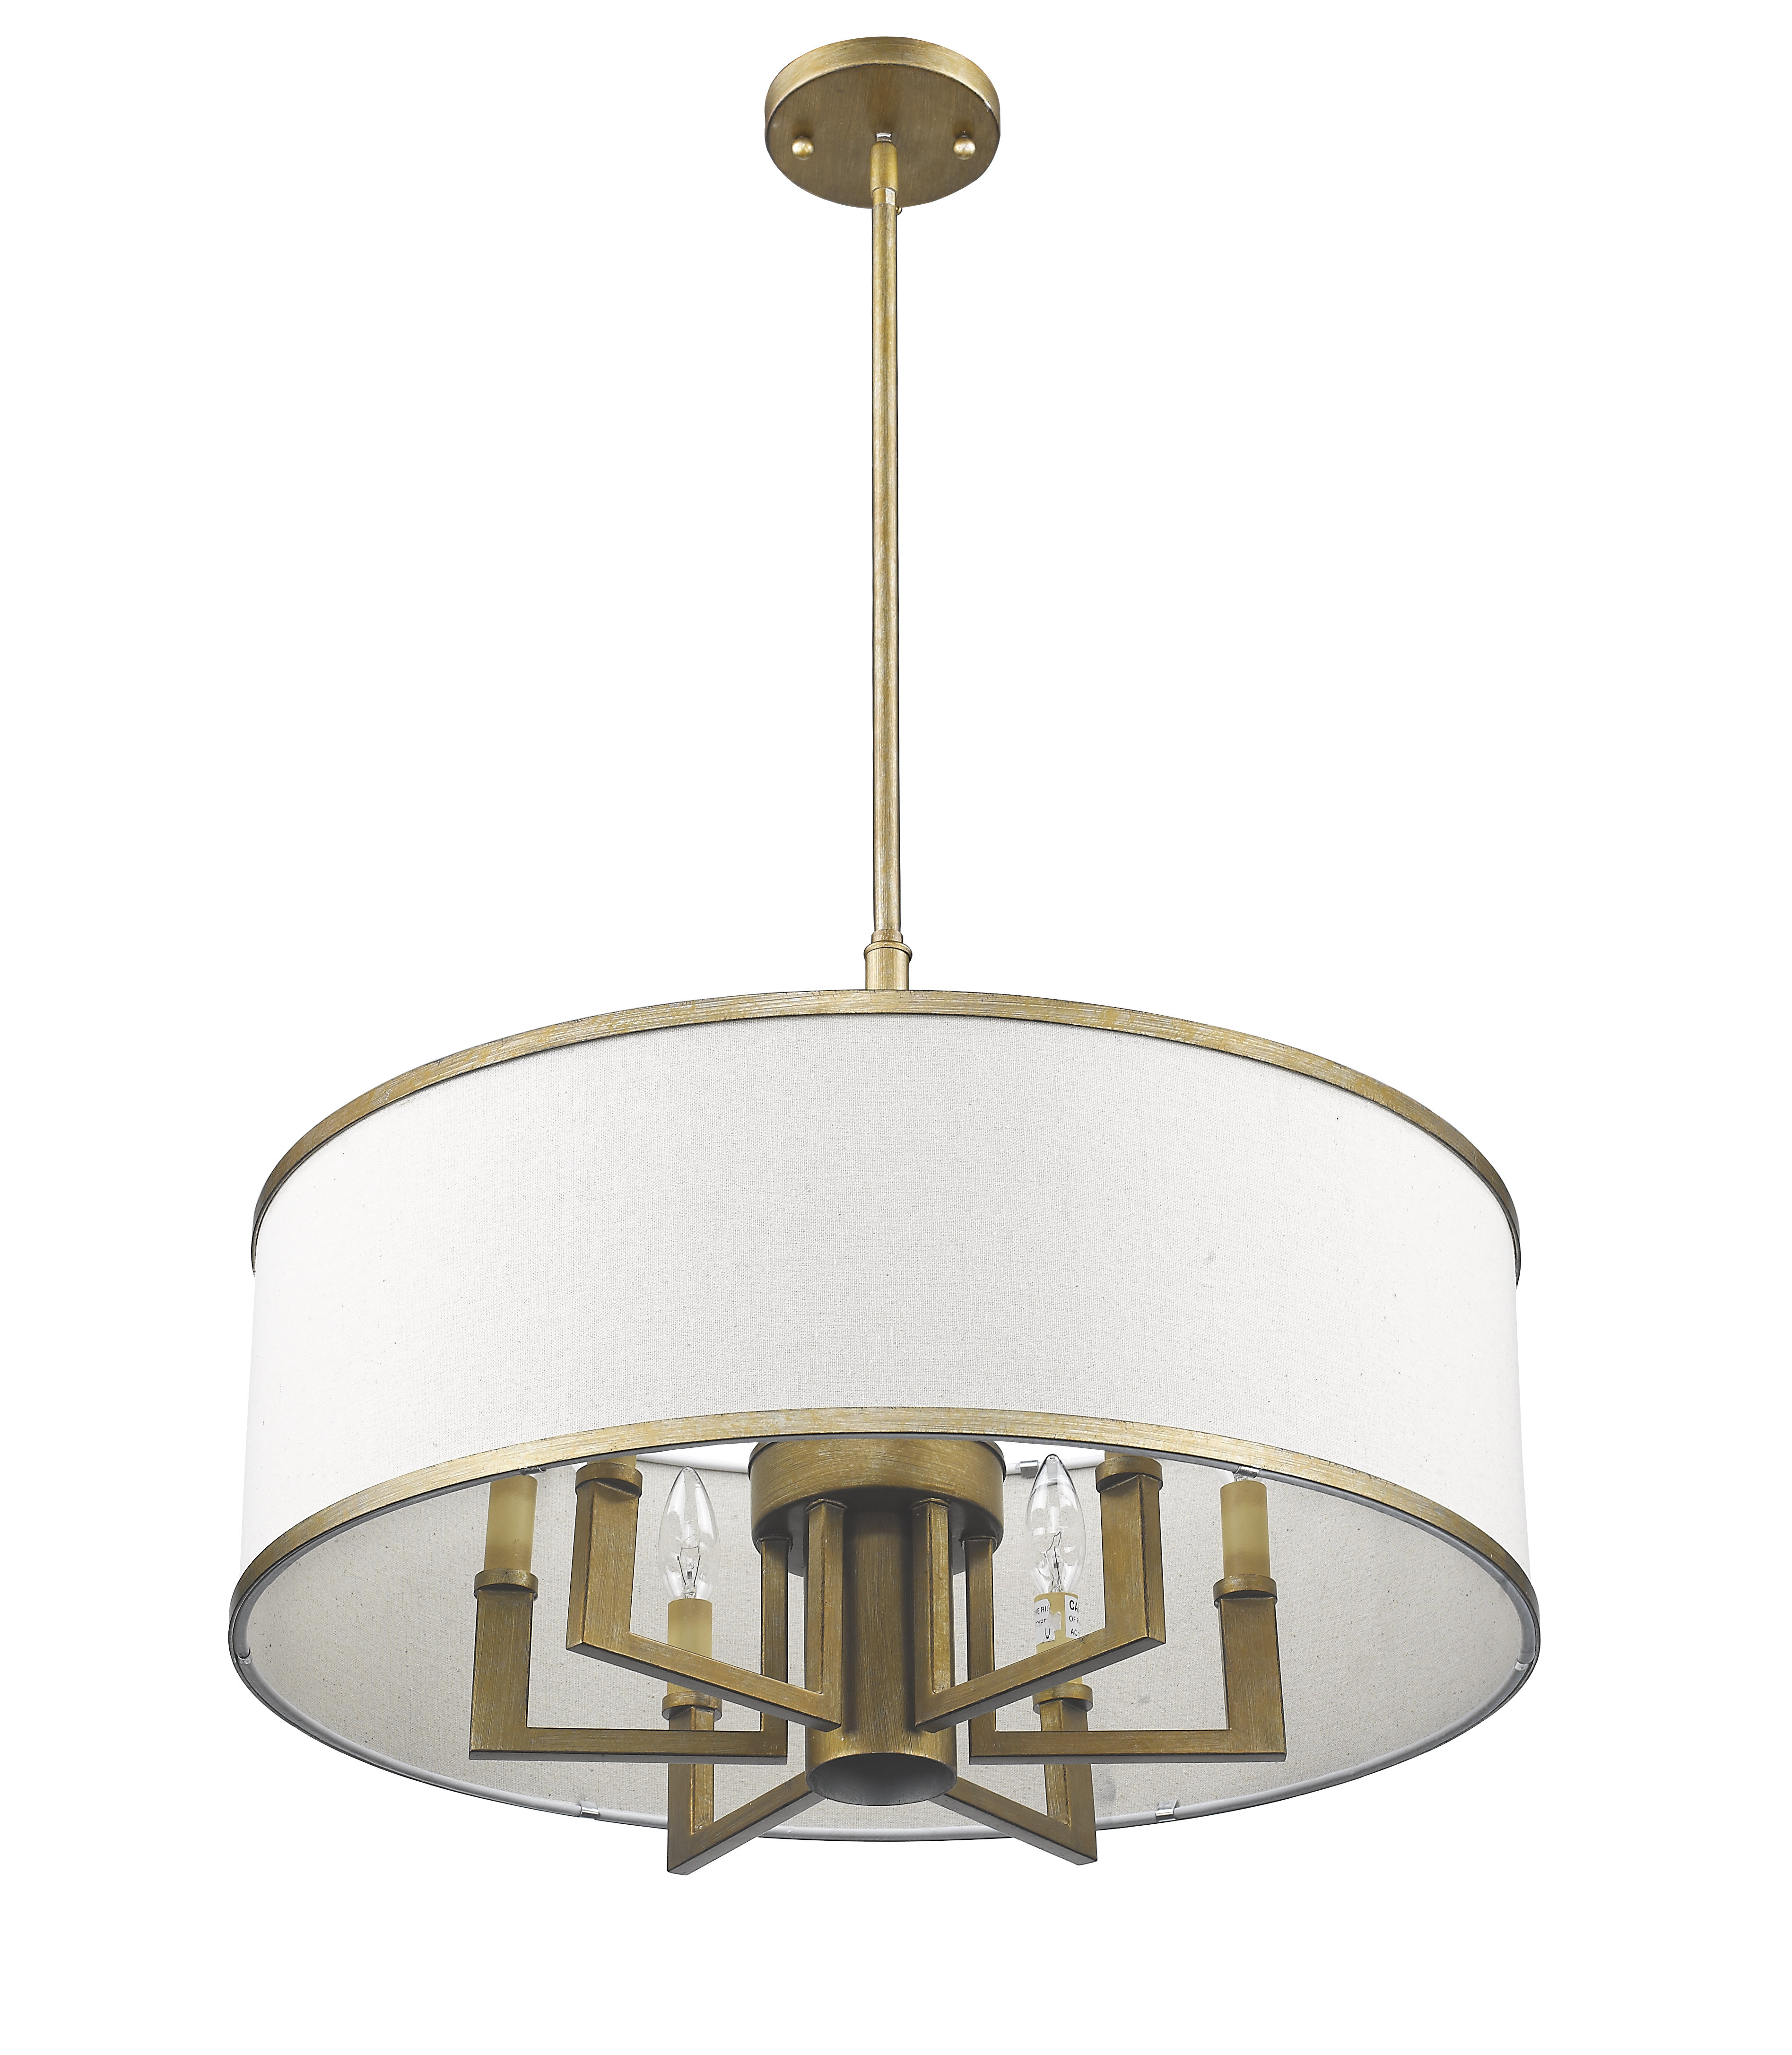 Breithaup 7-Light Drum Chandelier with regard to Wightman Drum Chandeliers (Image 6 of 30)